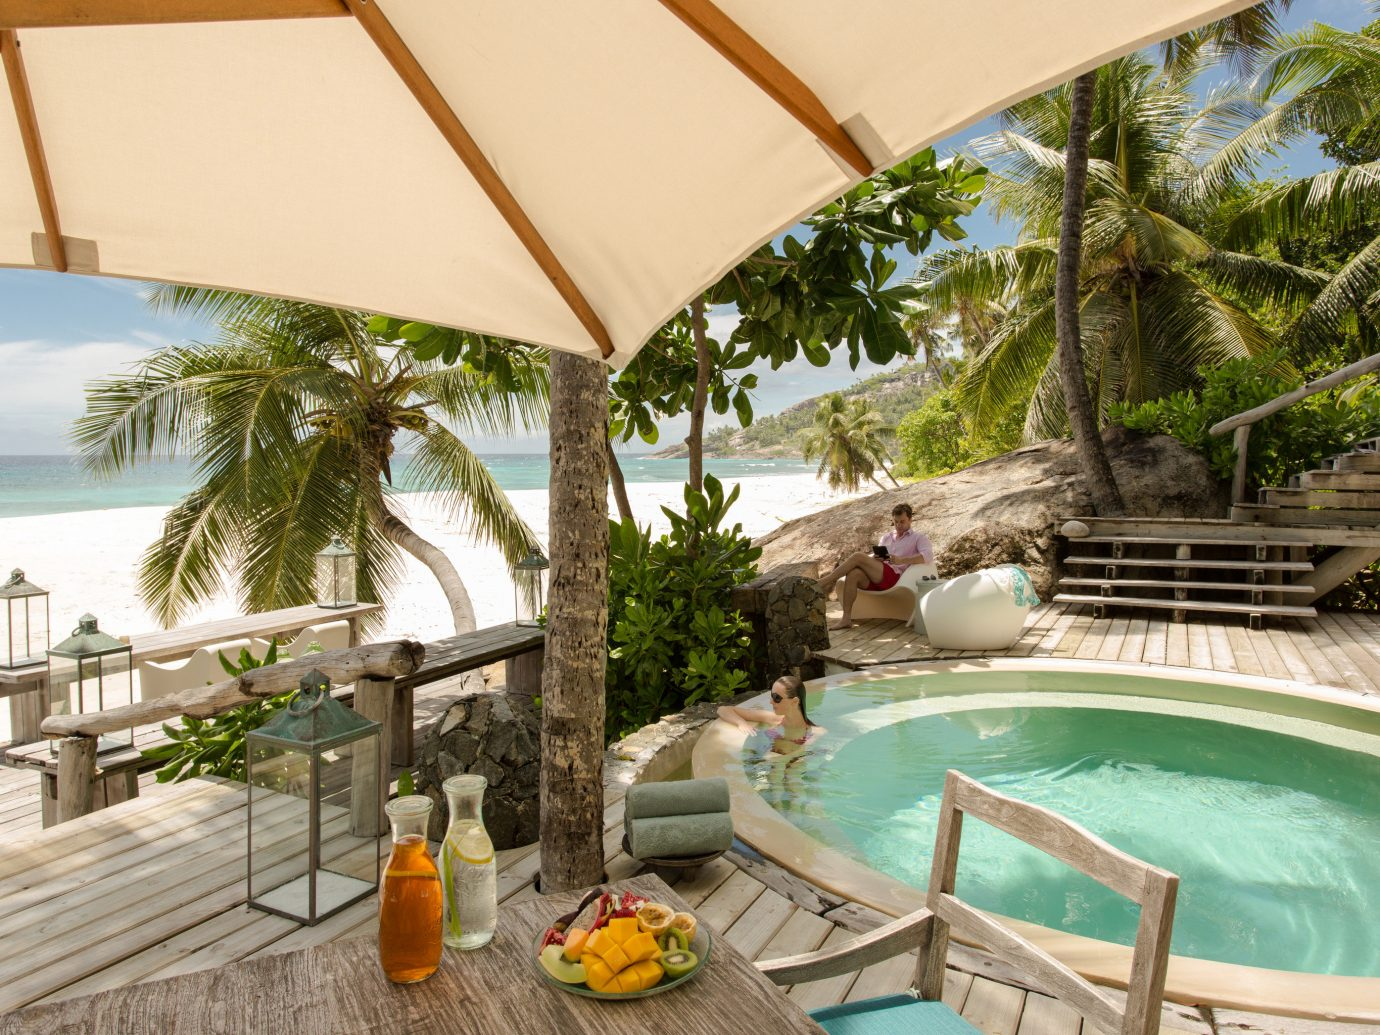 Luxury Travel Trip Ideas tree building Resort property swimming pool estate real estate arecales palm tree vacation leisure Villa outdoor structure hacienda resort town tropics caribbean furniture area Deck decorated wood Garden